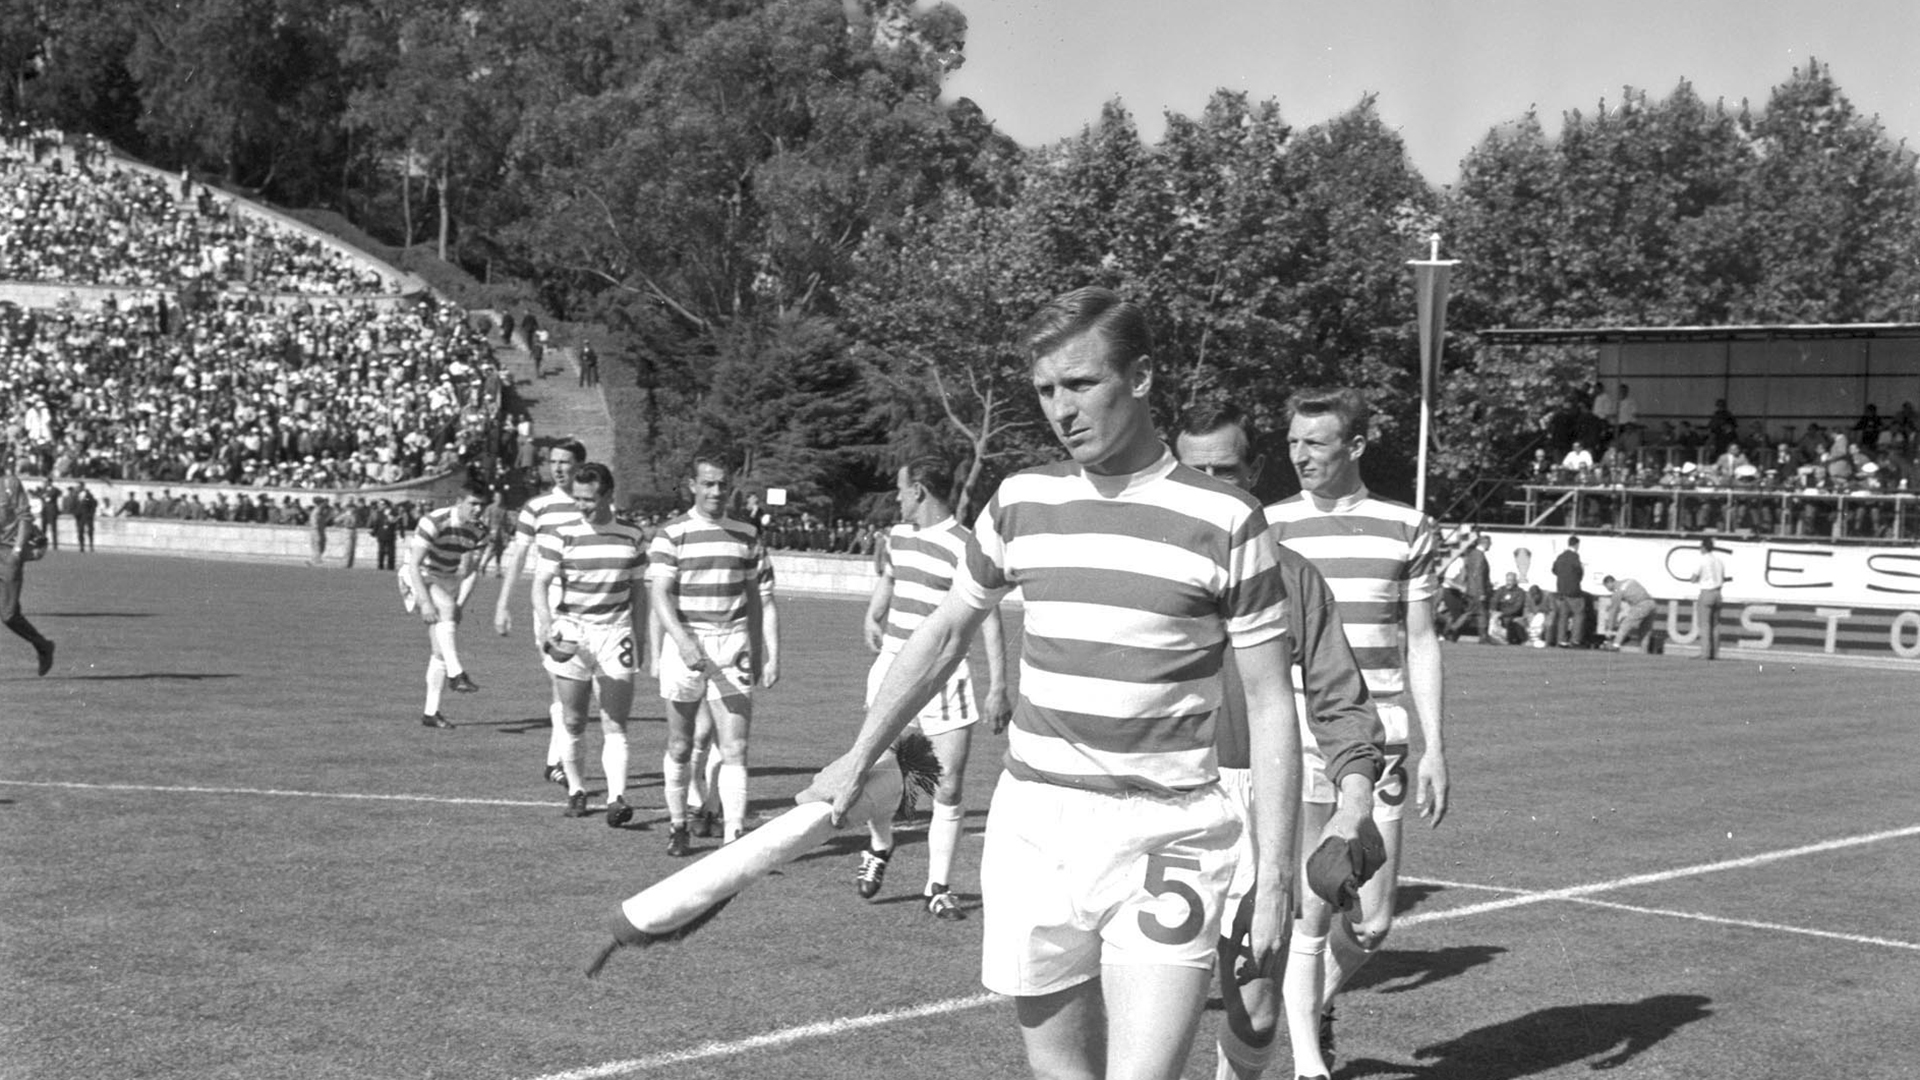 Iribar leads an expedition to Glasgow to hand the prize to Billy McNeill's family